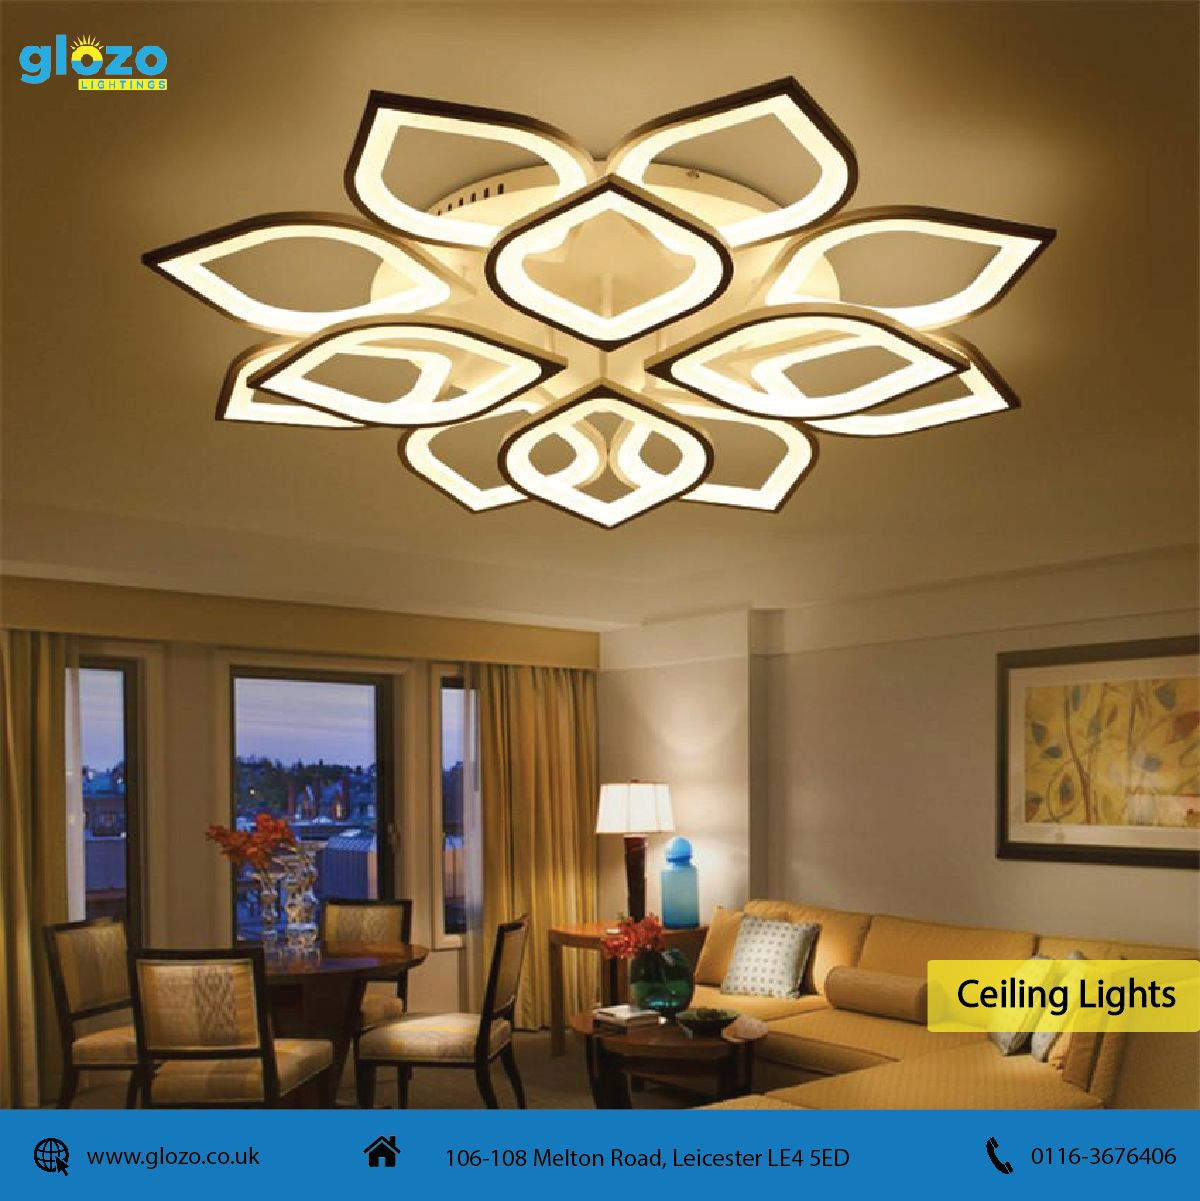 Turn To Bright Solutions And Elevate Your Decor With Ceiling Lights Led And Luxurious Pen Bedroom Ceiling Light Chandelier In Living Room Living Room Lighting